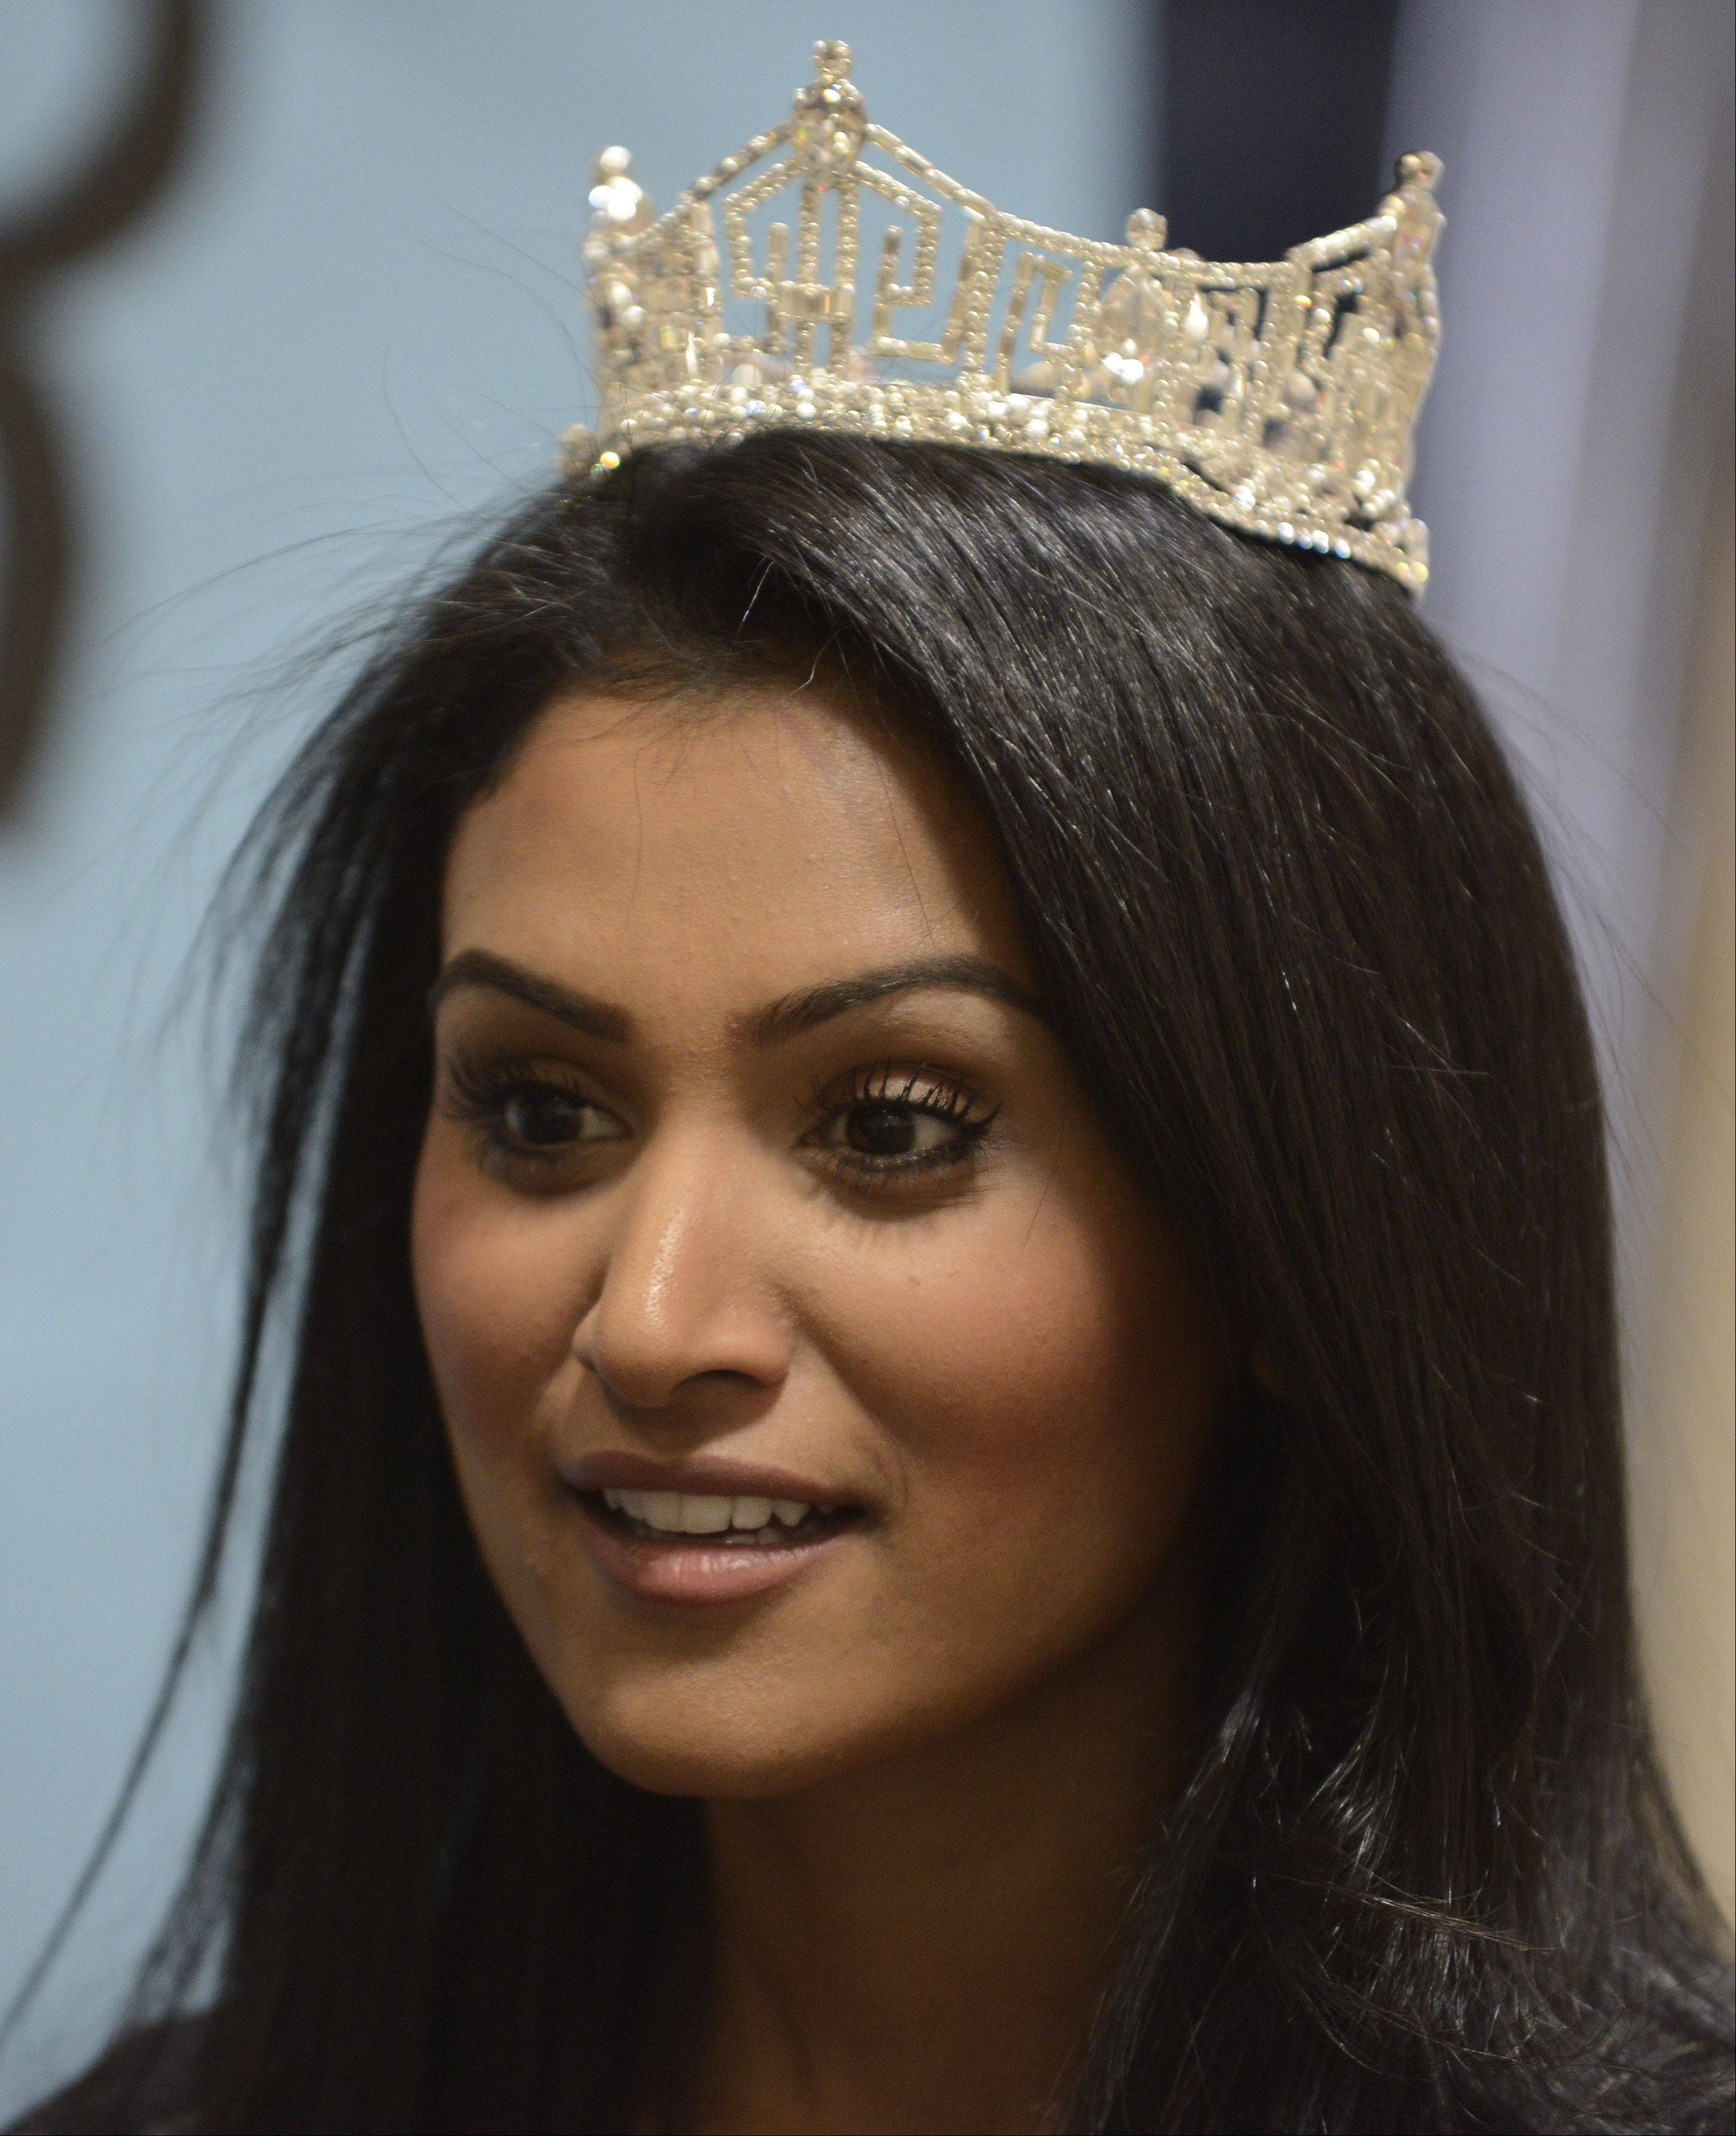 Nina Davuluri, Miss America 2014, visits the Stevenson High School World's Fair event Saturday in Lincolnshire.